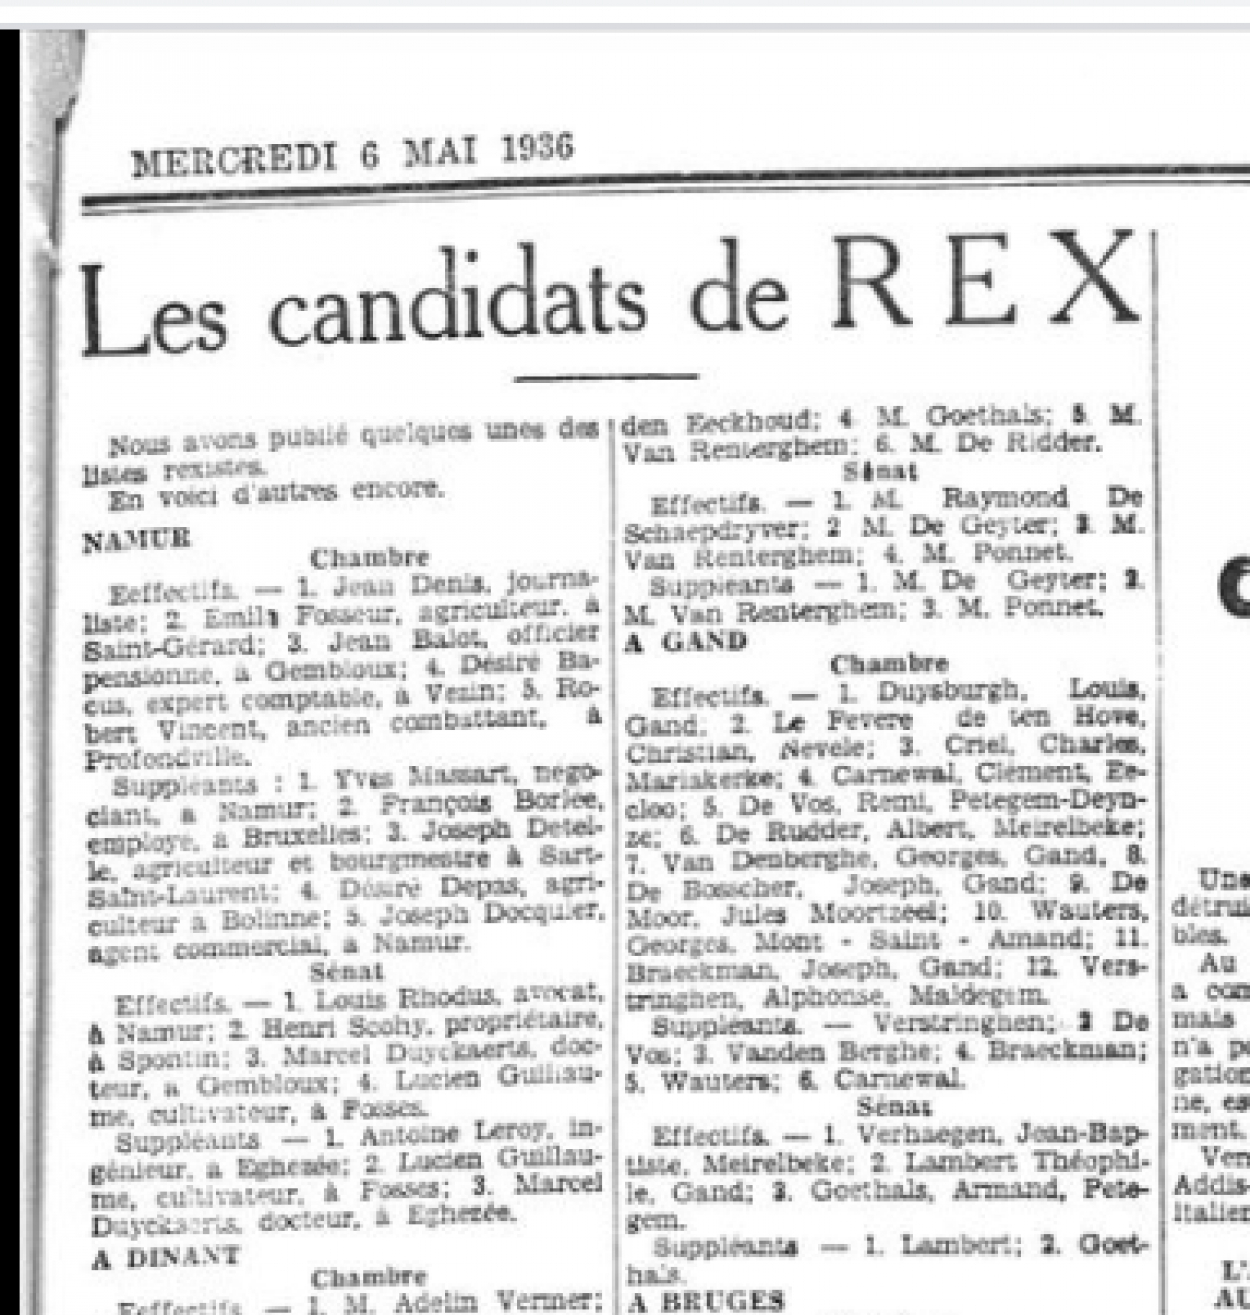 pays-rAel-6-5-1936-p-3-candidats-rexistes-dAtail.png